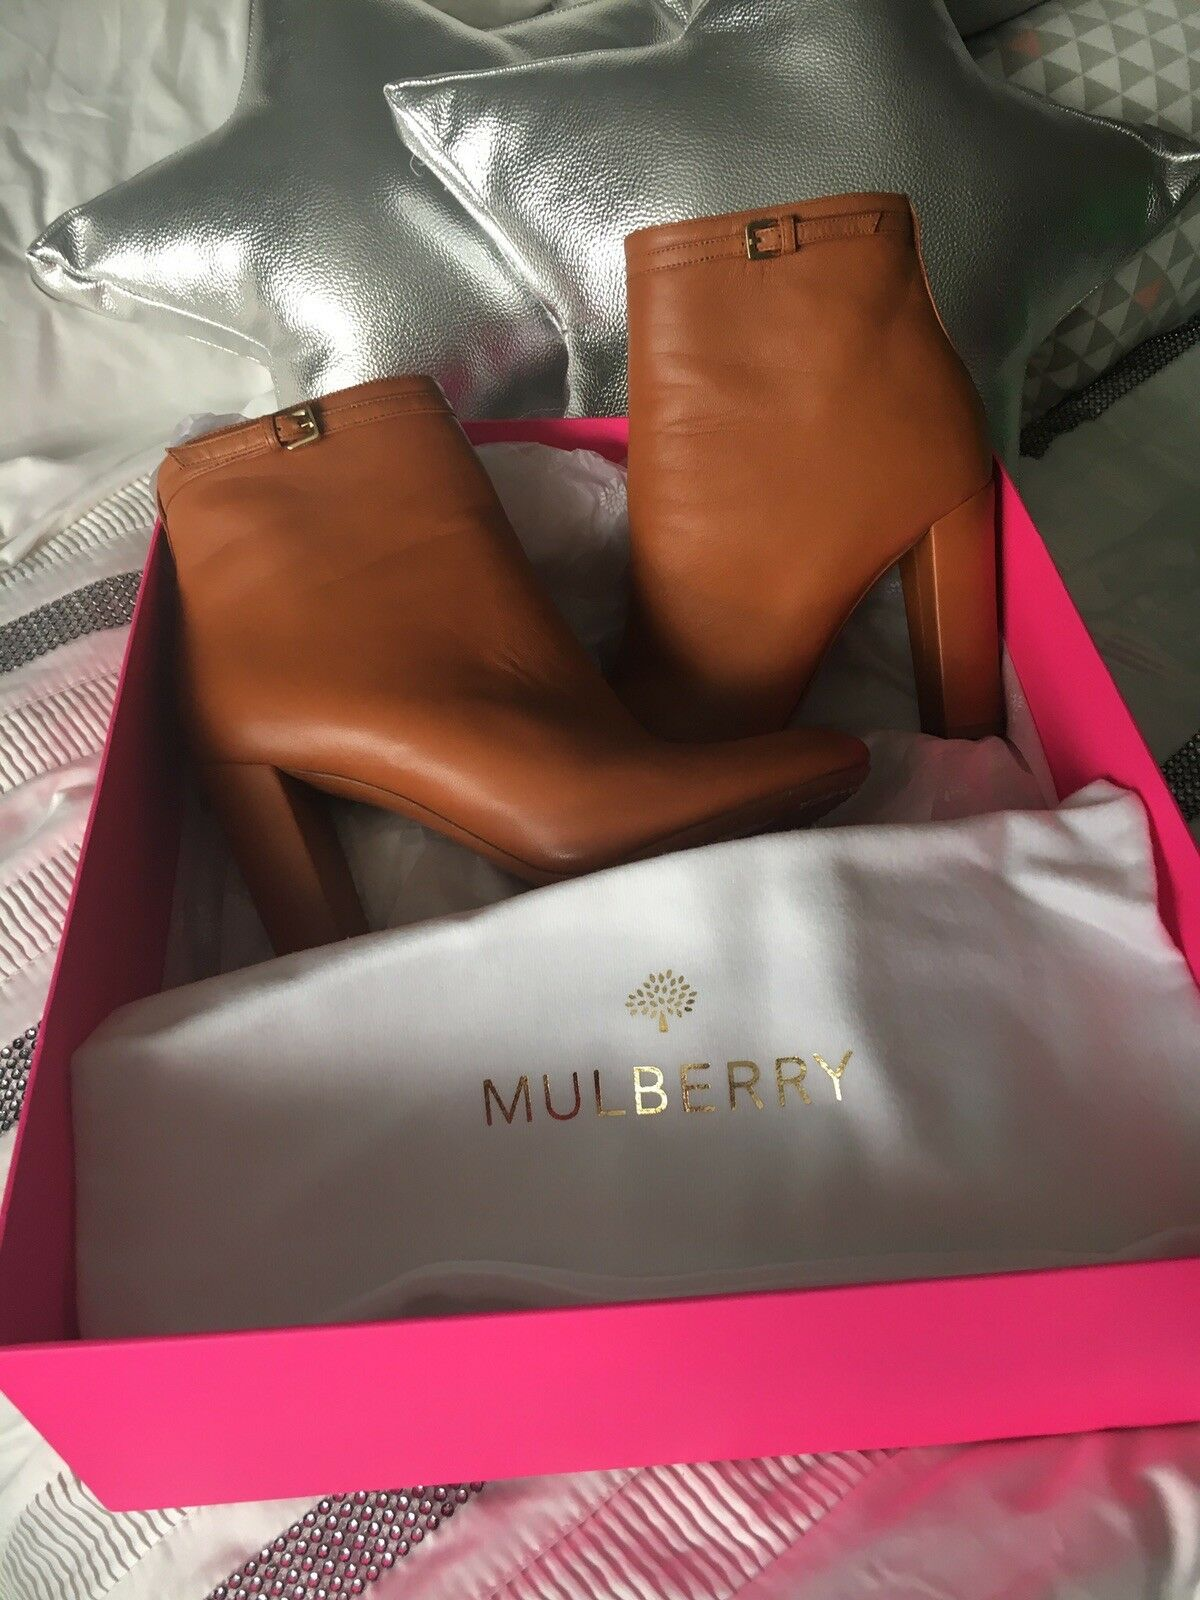 Mulberry Leather Boots with box